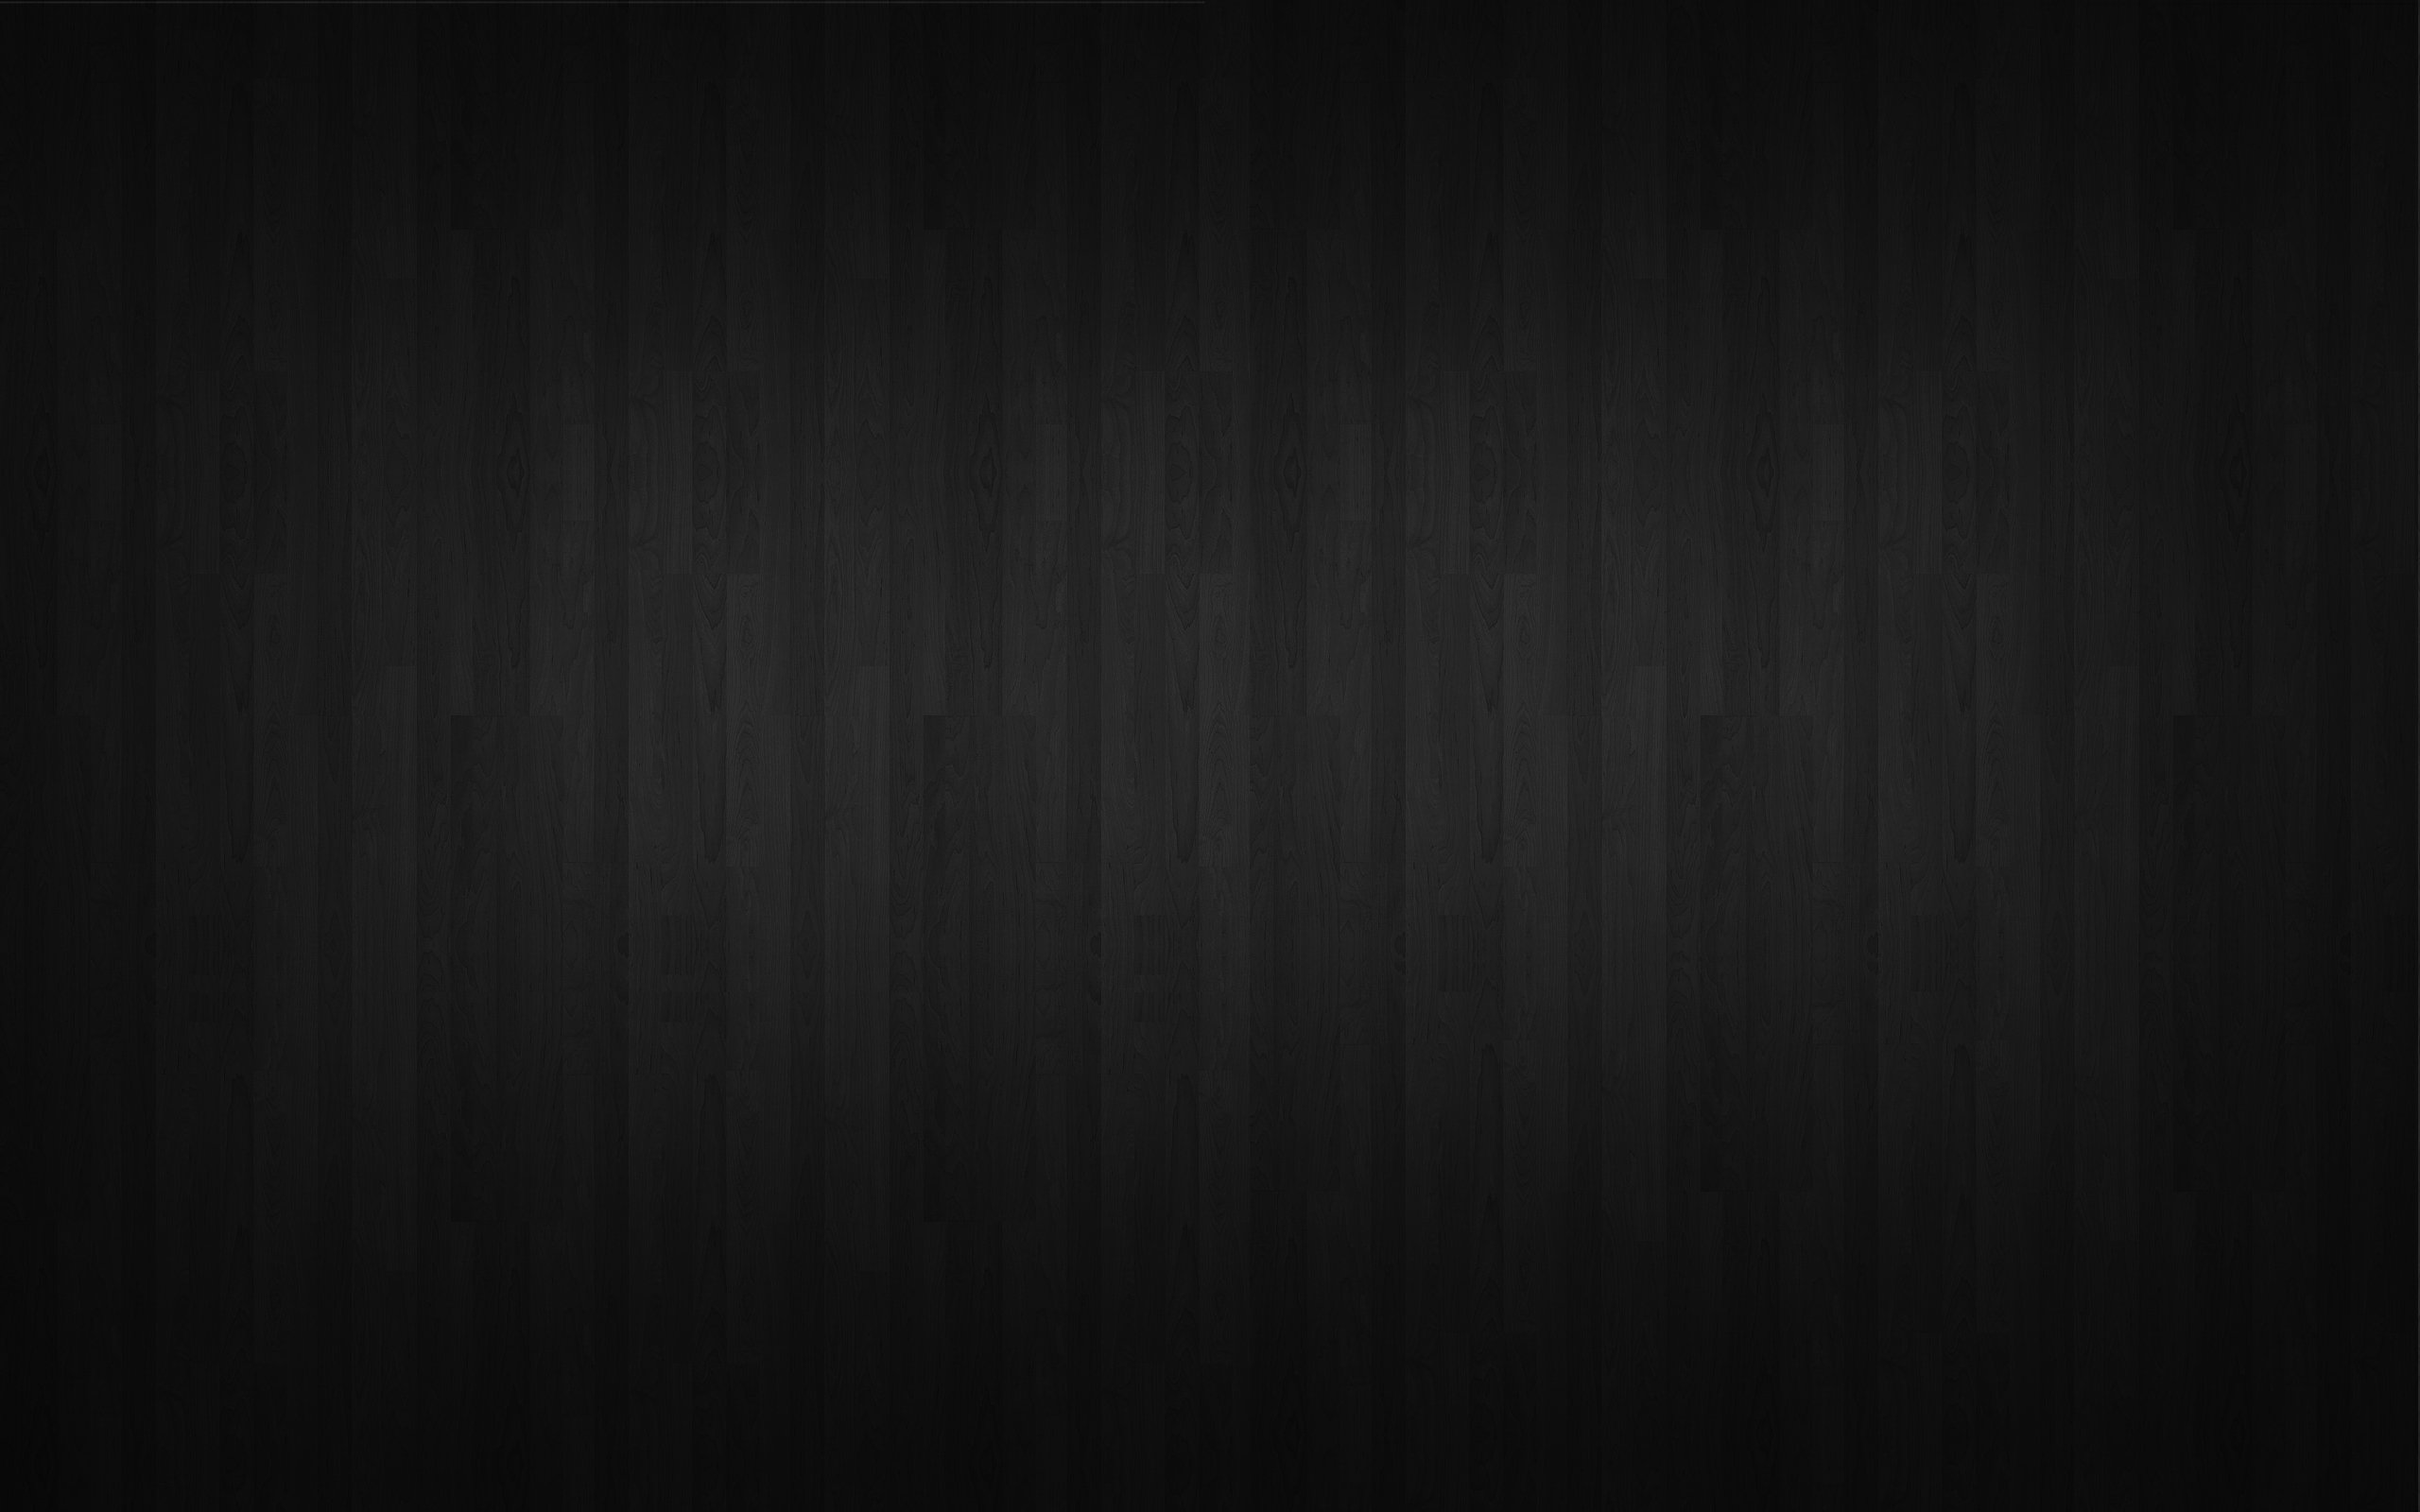 Black Wallpaper   Best HD Wallpaper 2560x1600